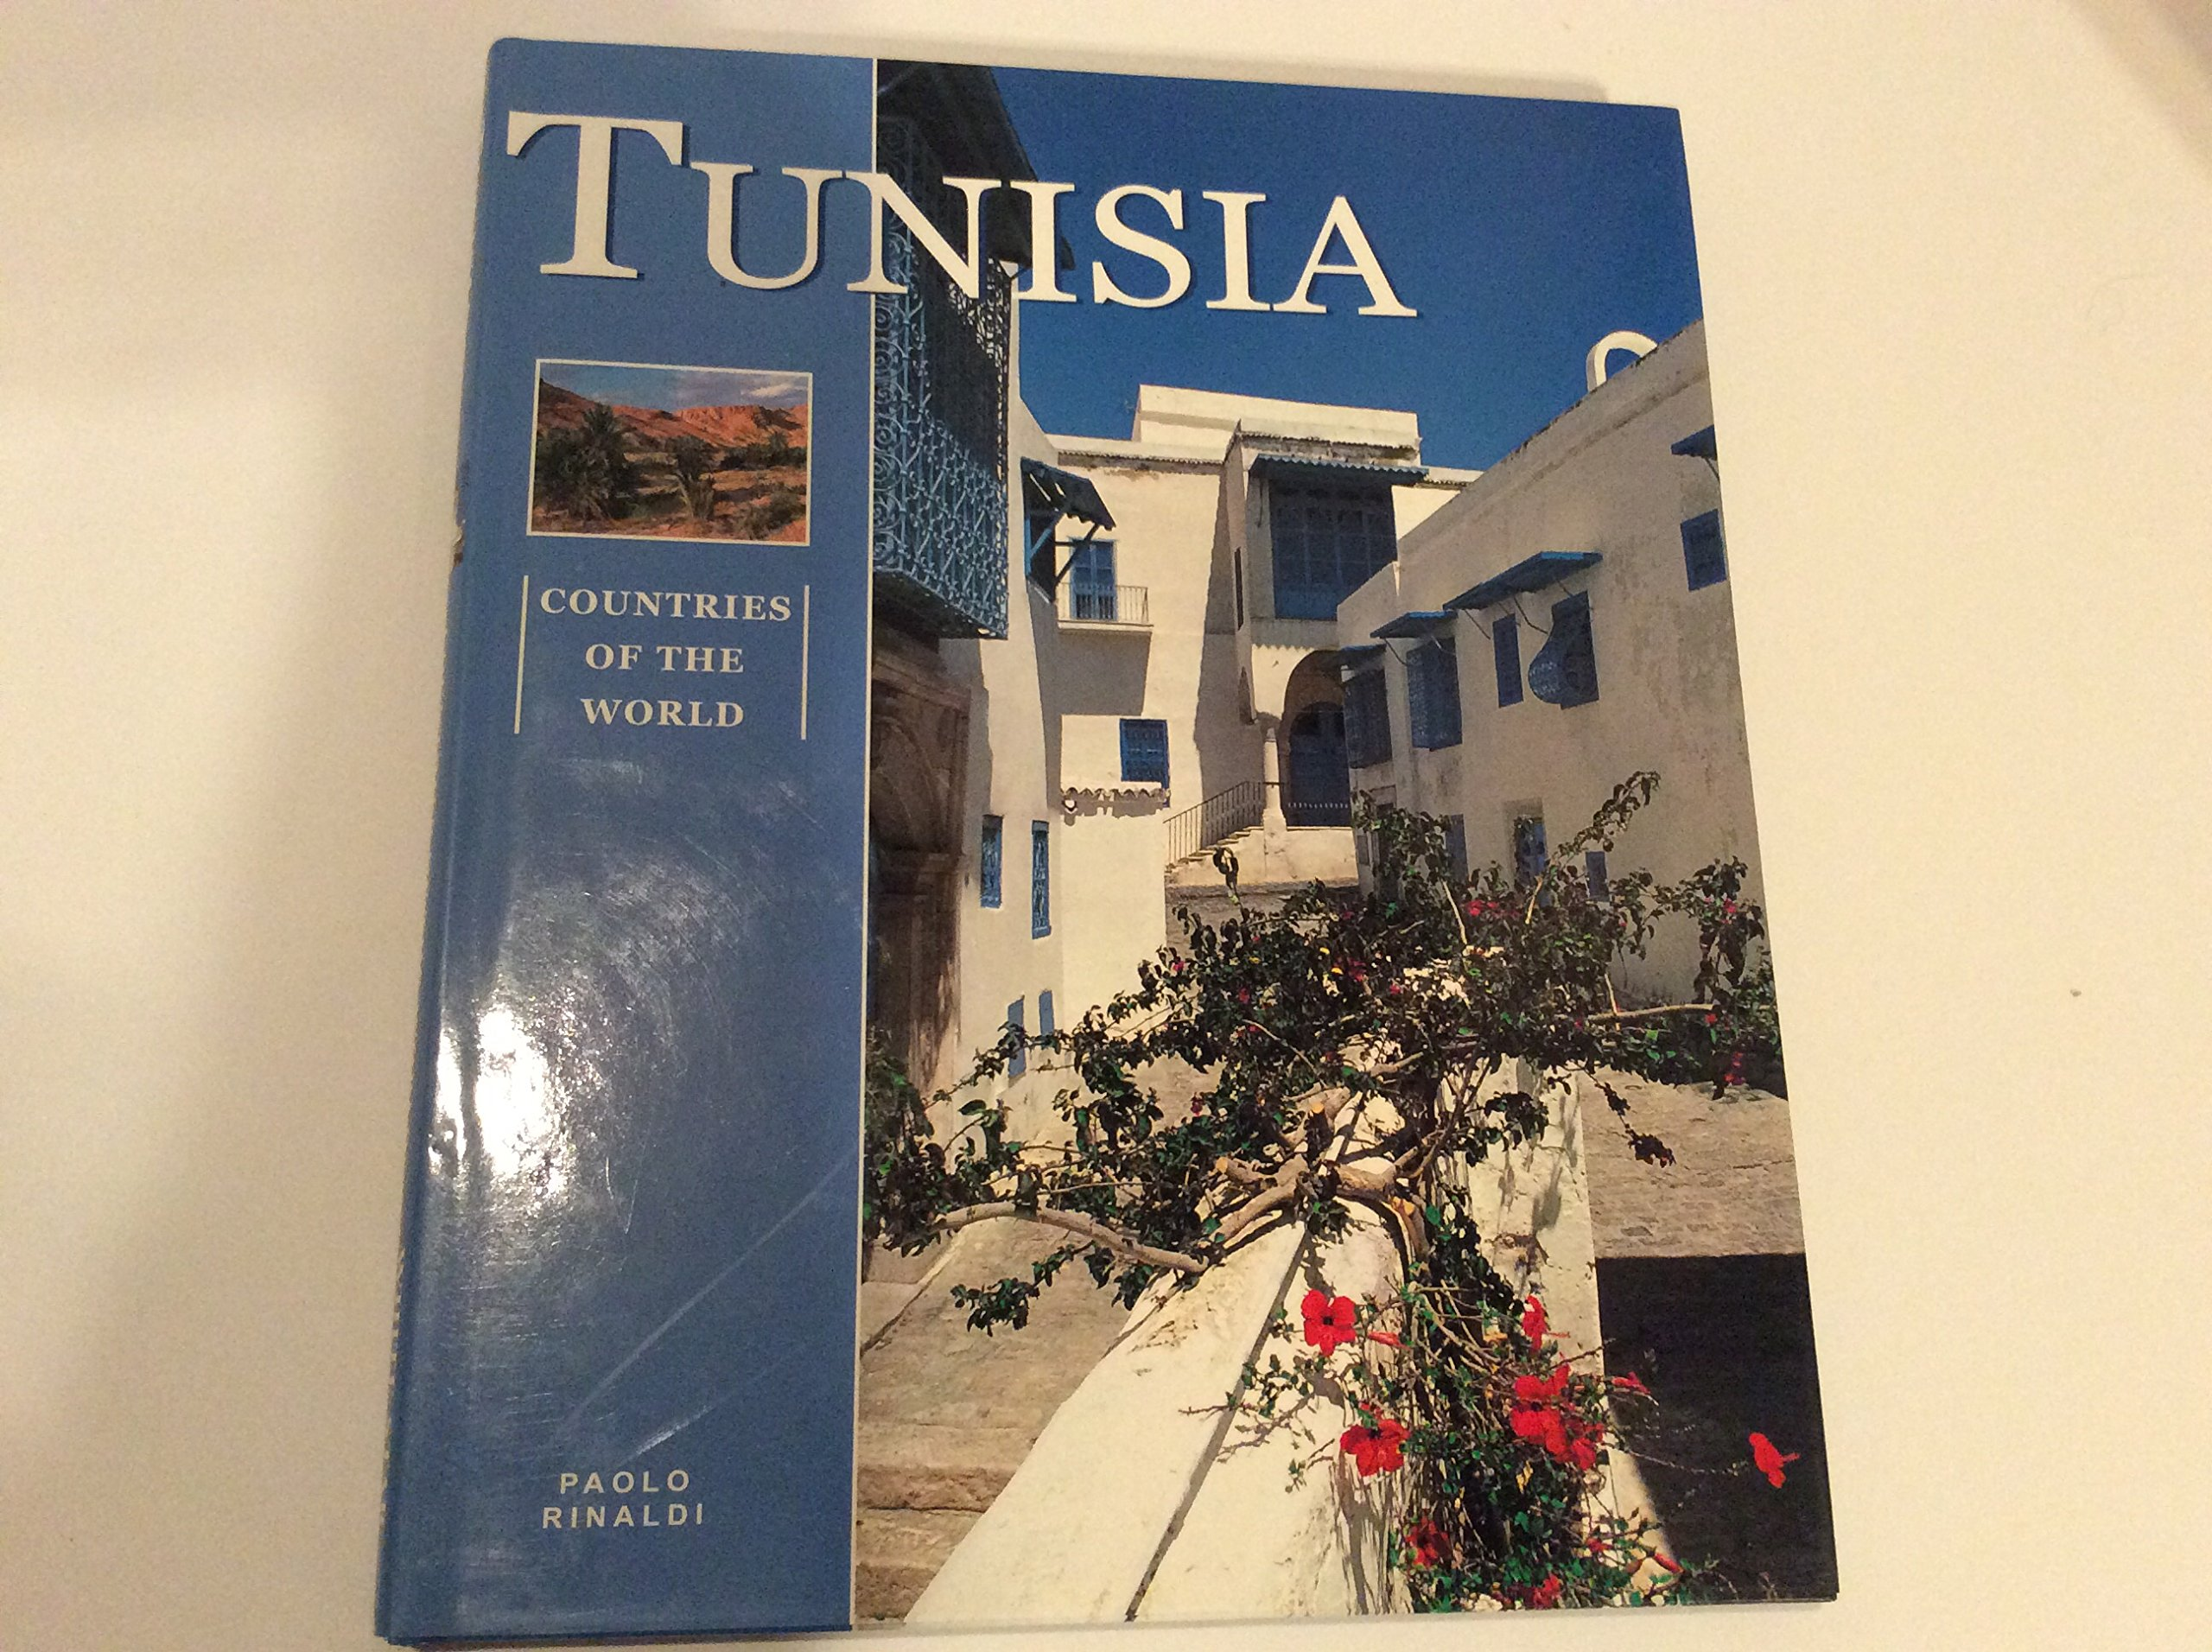 Tunisia (Countries of the World)